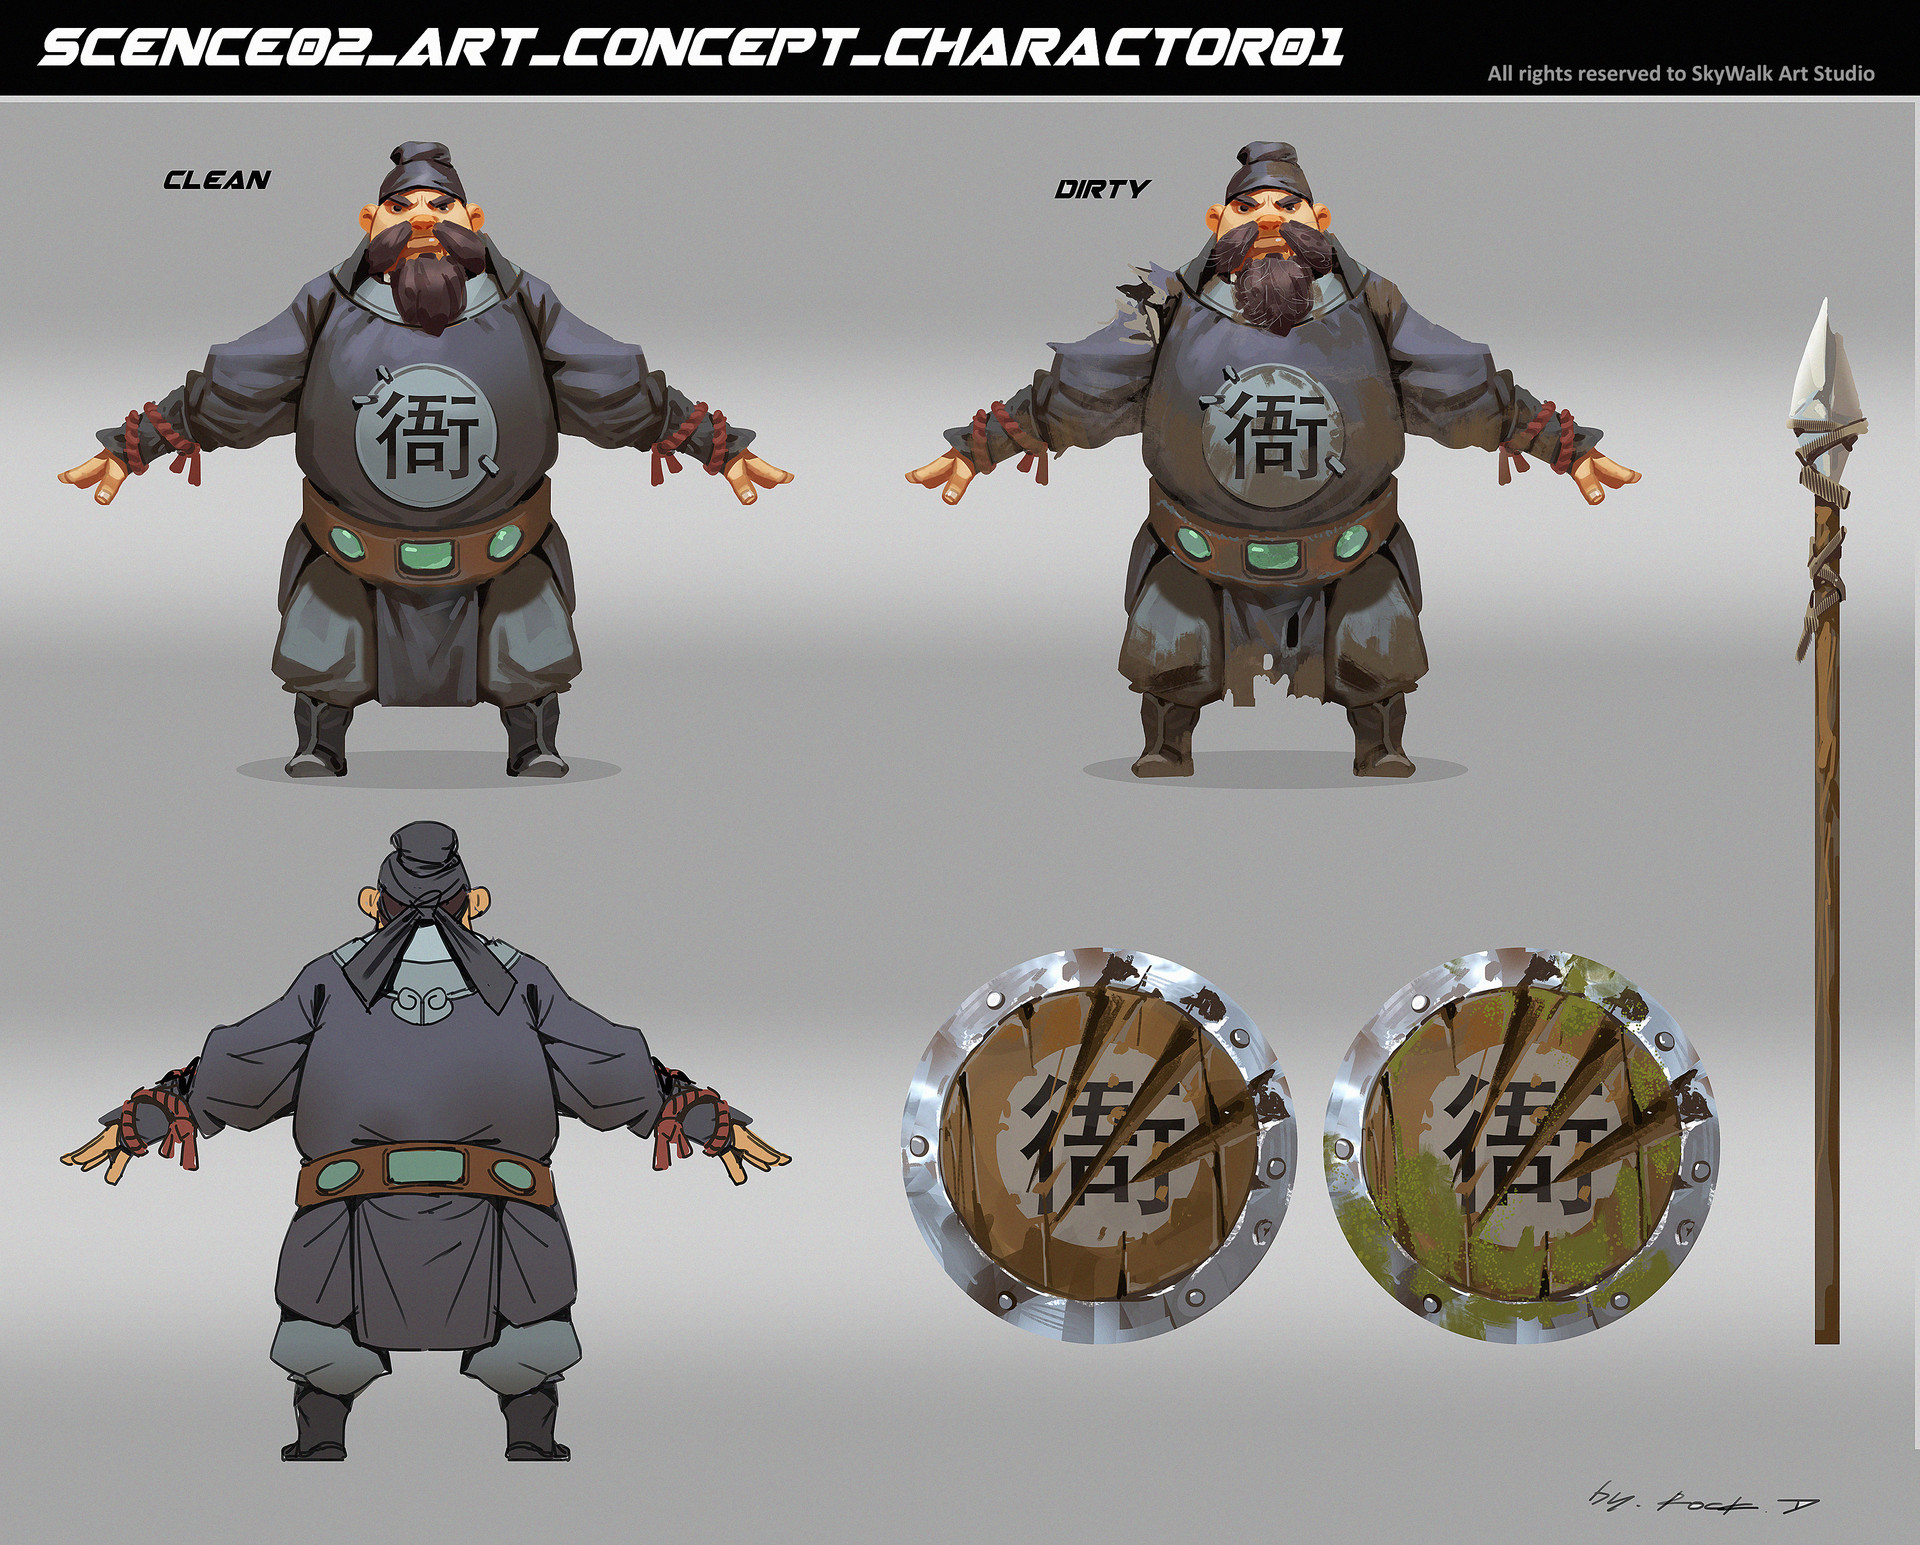 Rock d scence2 charactor01 concept